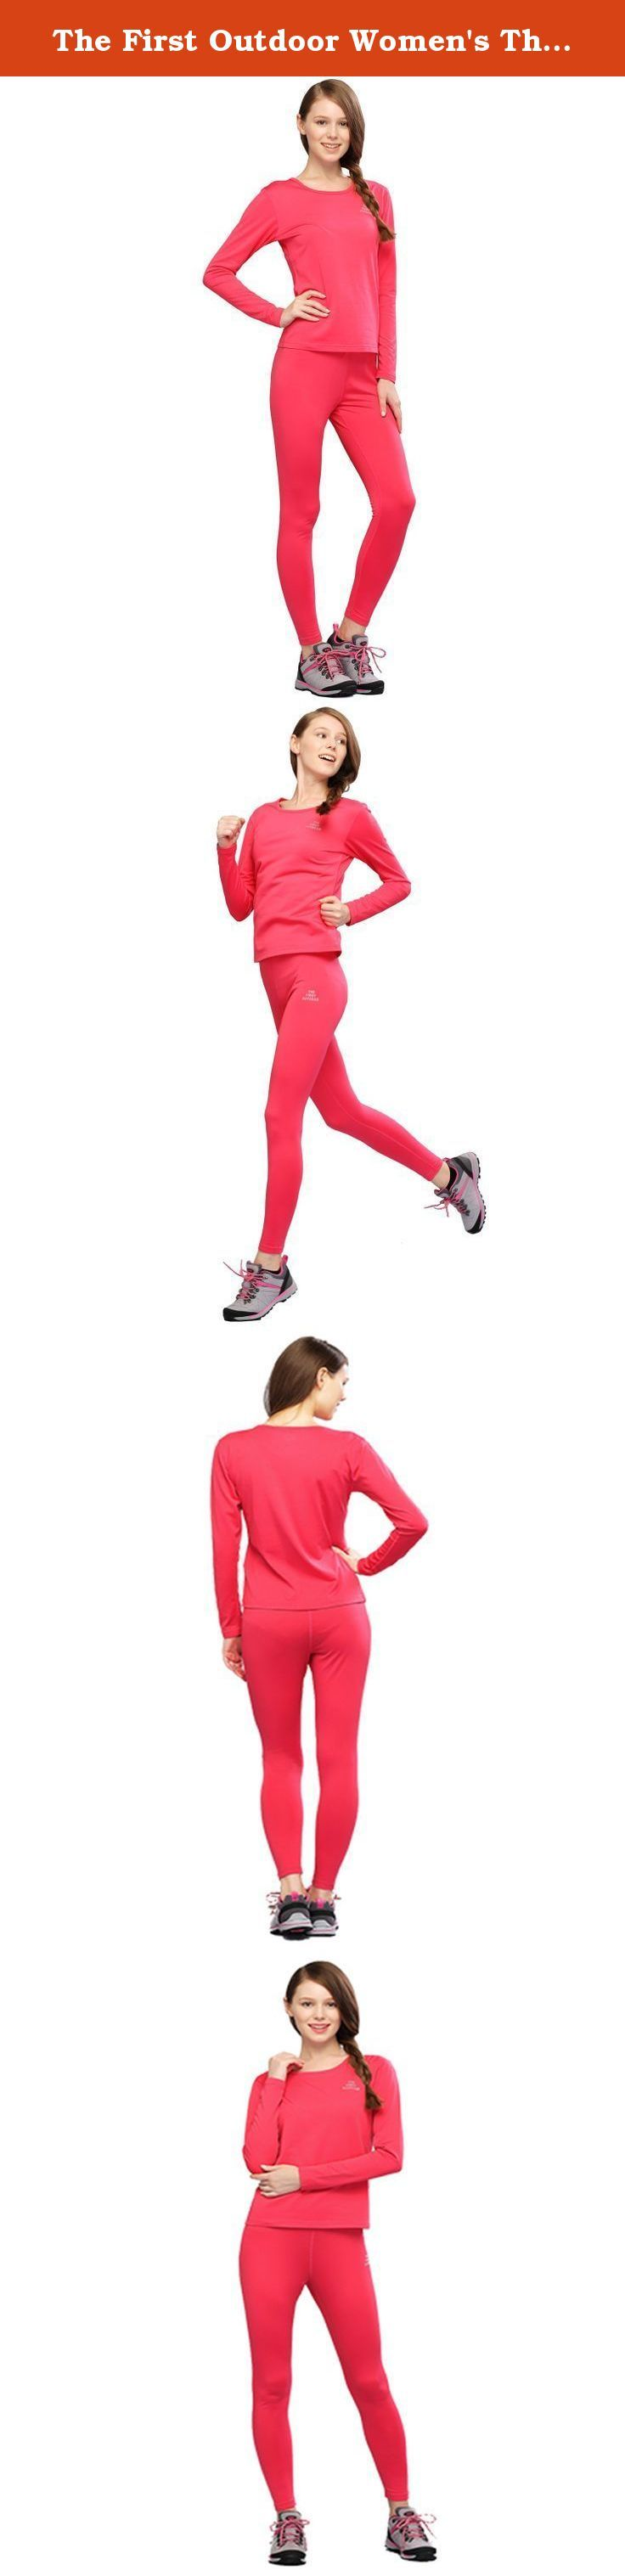 The First Outdoor Women's Thermal Underwear Set Top & Bottom Fleece Lined Small Rose Red. Specification: * The First Outdoor Women's Thermal Underwear Set Top & Bottom Fleece Lined * Package Dimensions: Length 23(cm) x Height 8.8(cm) x Width 18.8(cm) * Material: 5%Spandex+95%Polyester * Package Weight: 0.8kg * Special Features: Quick drying; Keeping warm; Made of skin-friendly material and avoids pilling or color fading; Suede lining makes sure you feel like at ease and warm; Machine wash…